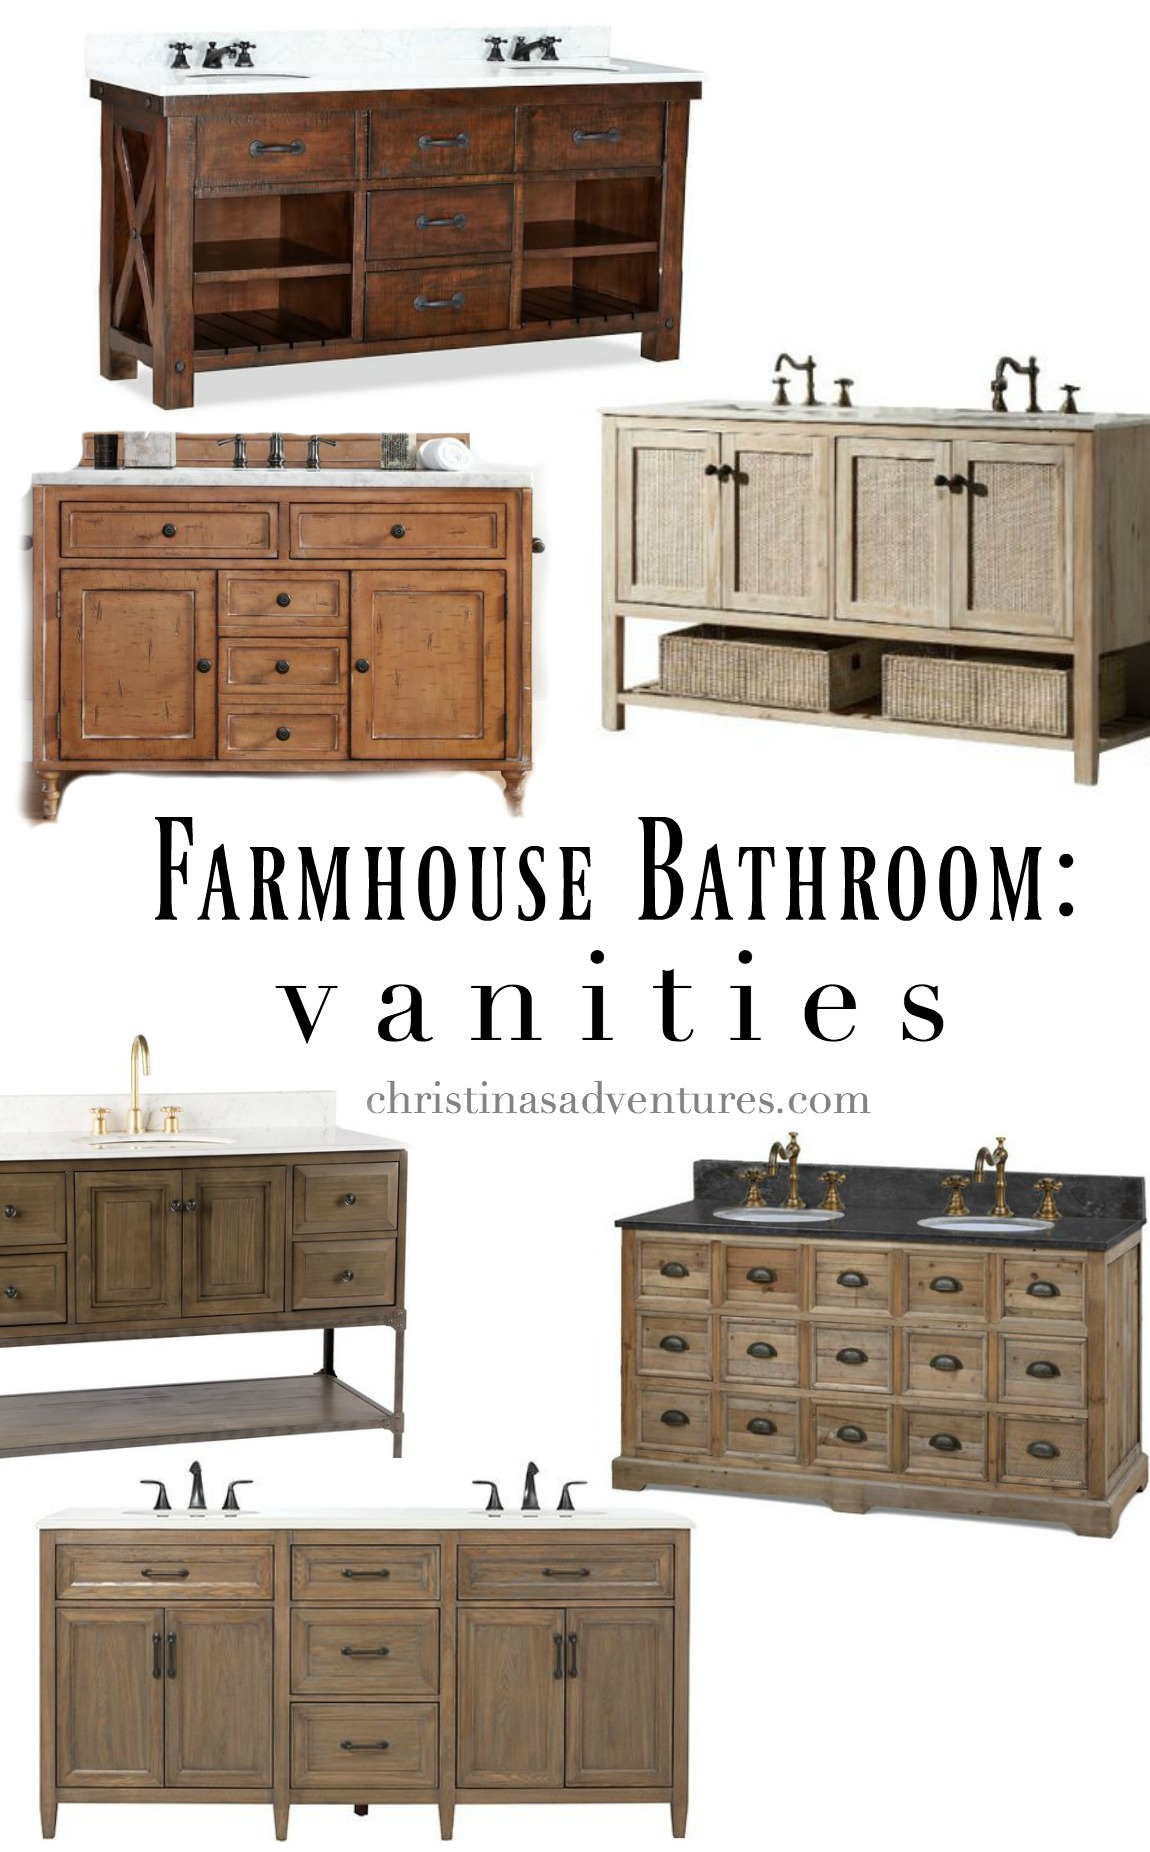 vanities farmhouse bathroom design - Farmhouse Bathroom Vanity